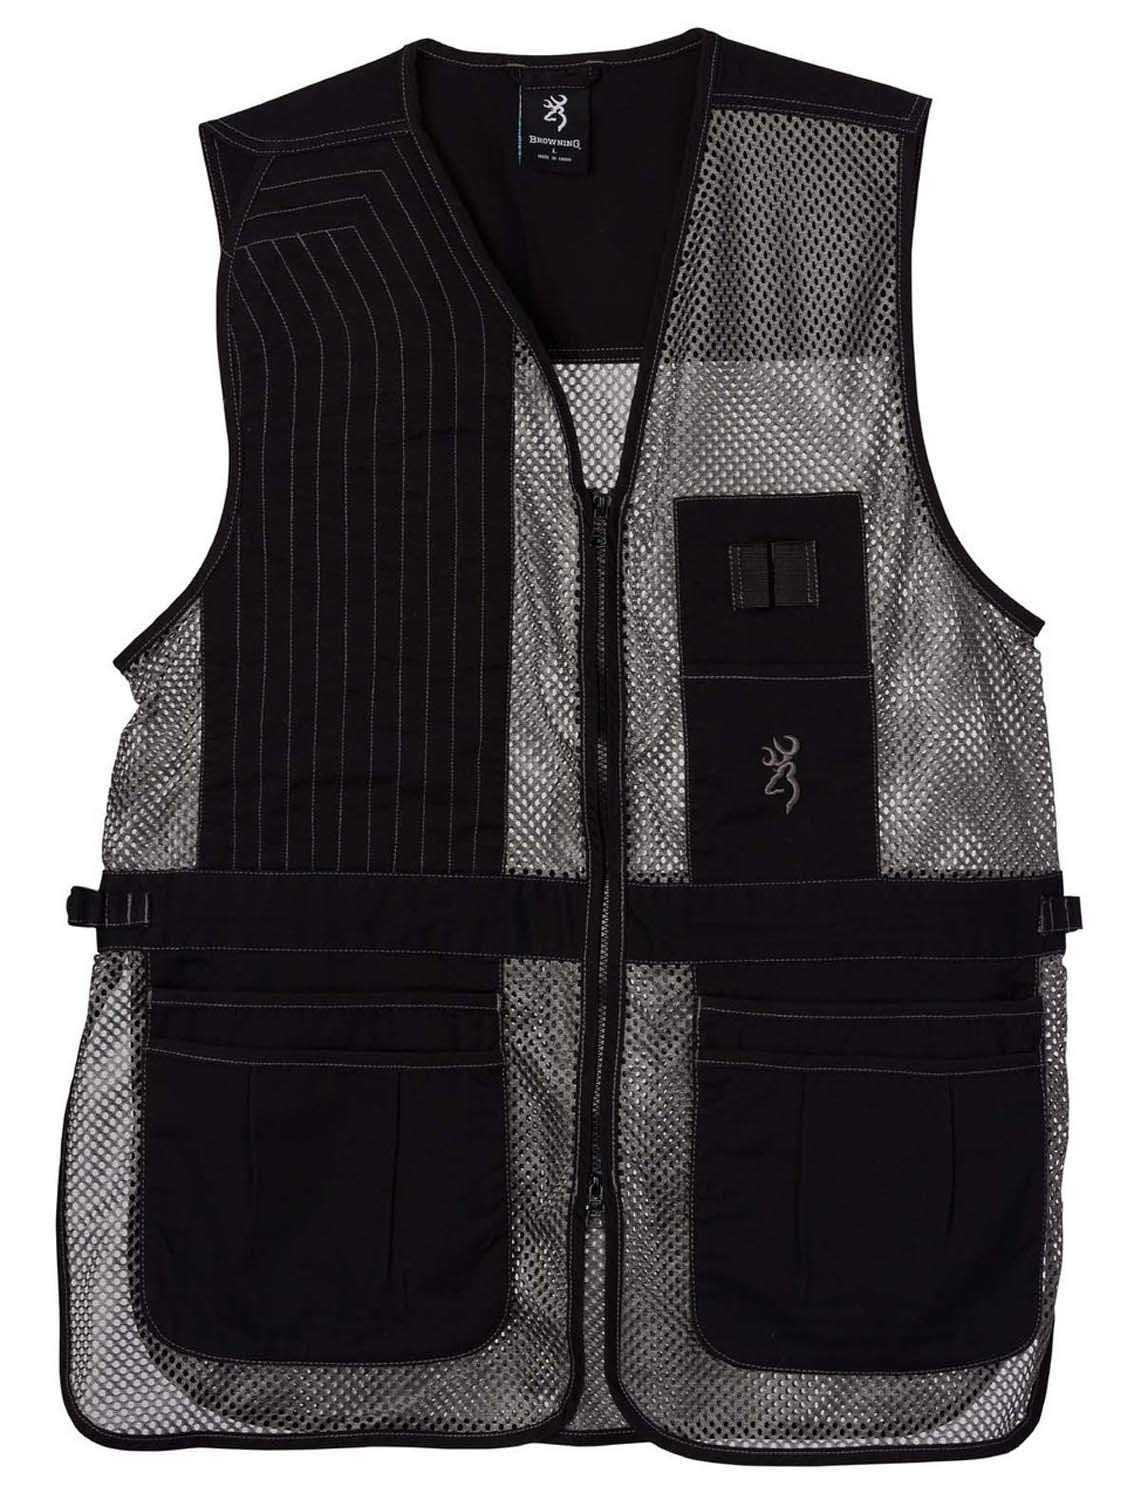 Browning, Trapper Creek Mesh Shooting Vest, Black/Gray, Medium, Right Hand by Browning